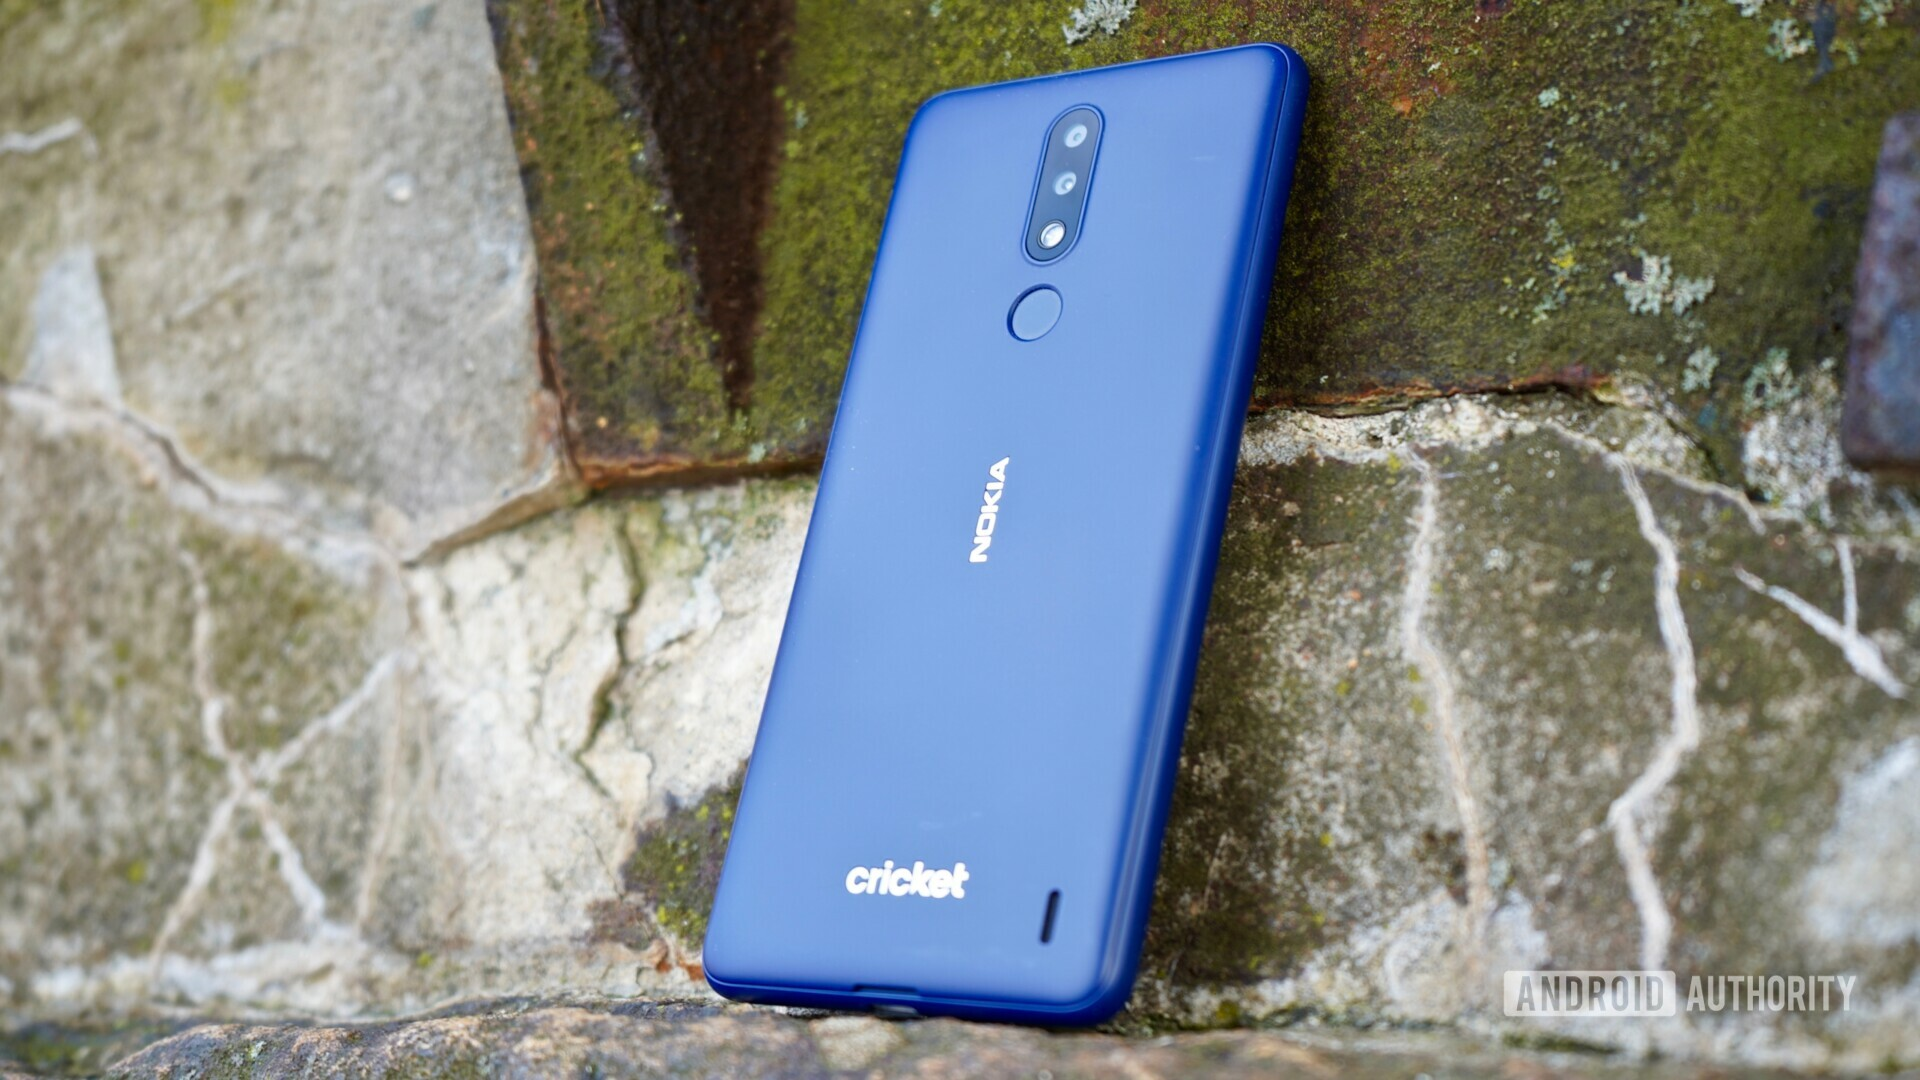 Back side view of the Blue Nokia 3.1 Plus on a stone.